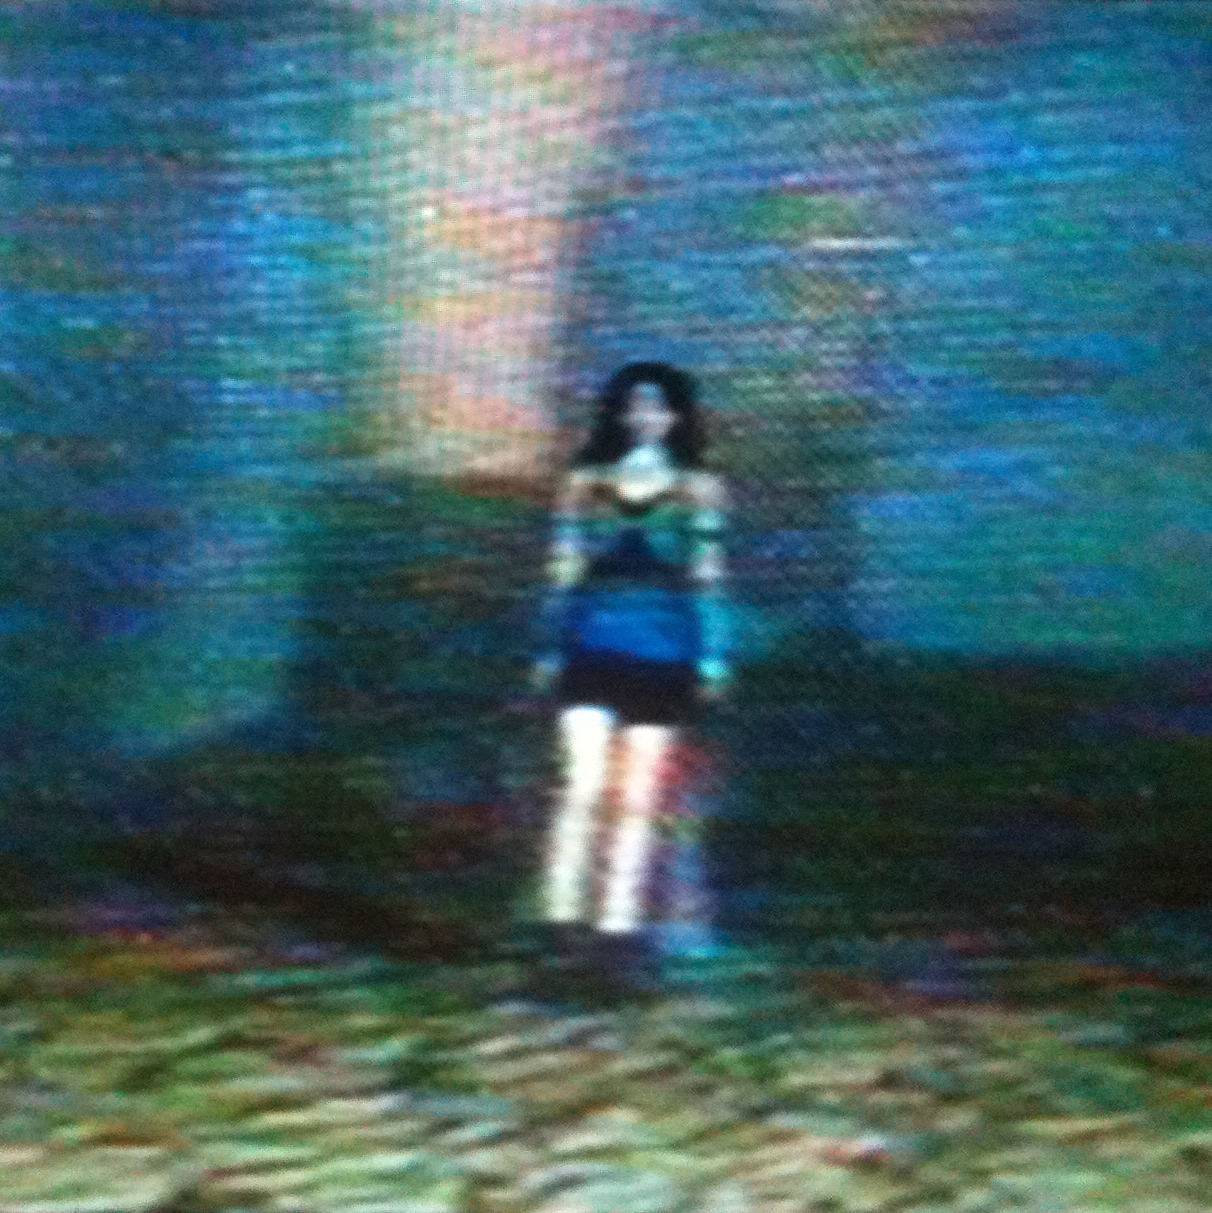 Rinoa Heartilly at the end of Final Fantasy VIII (caught on VHS).